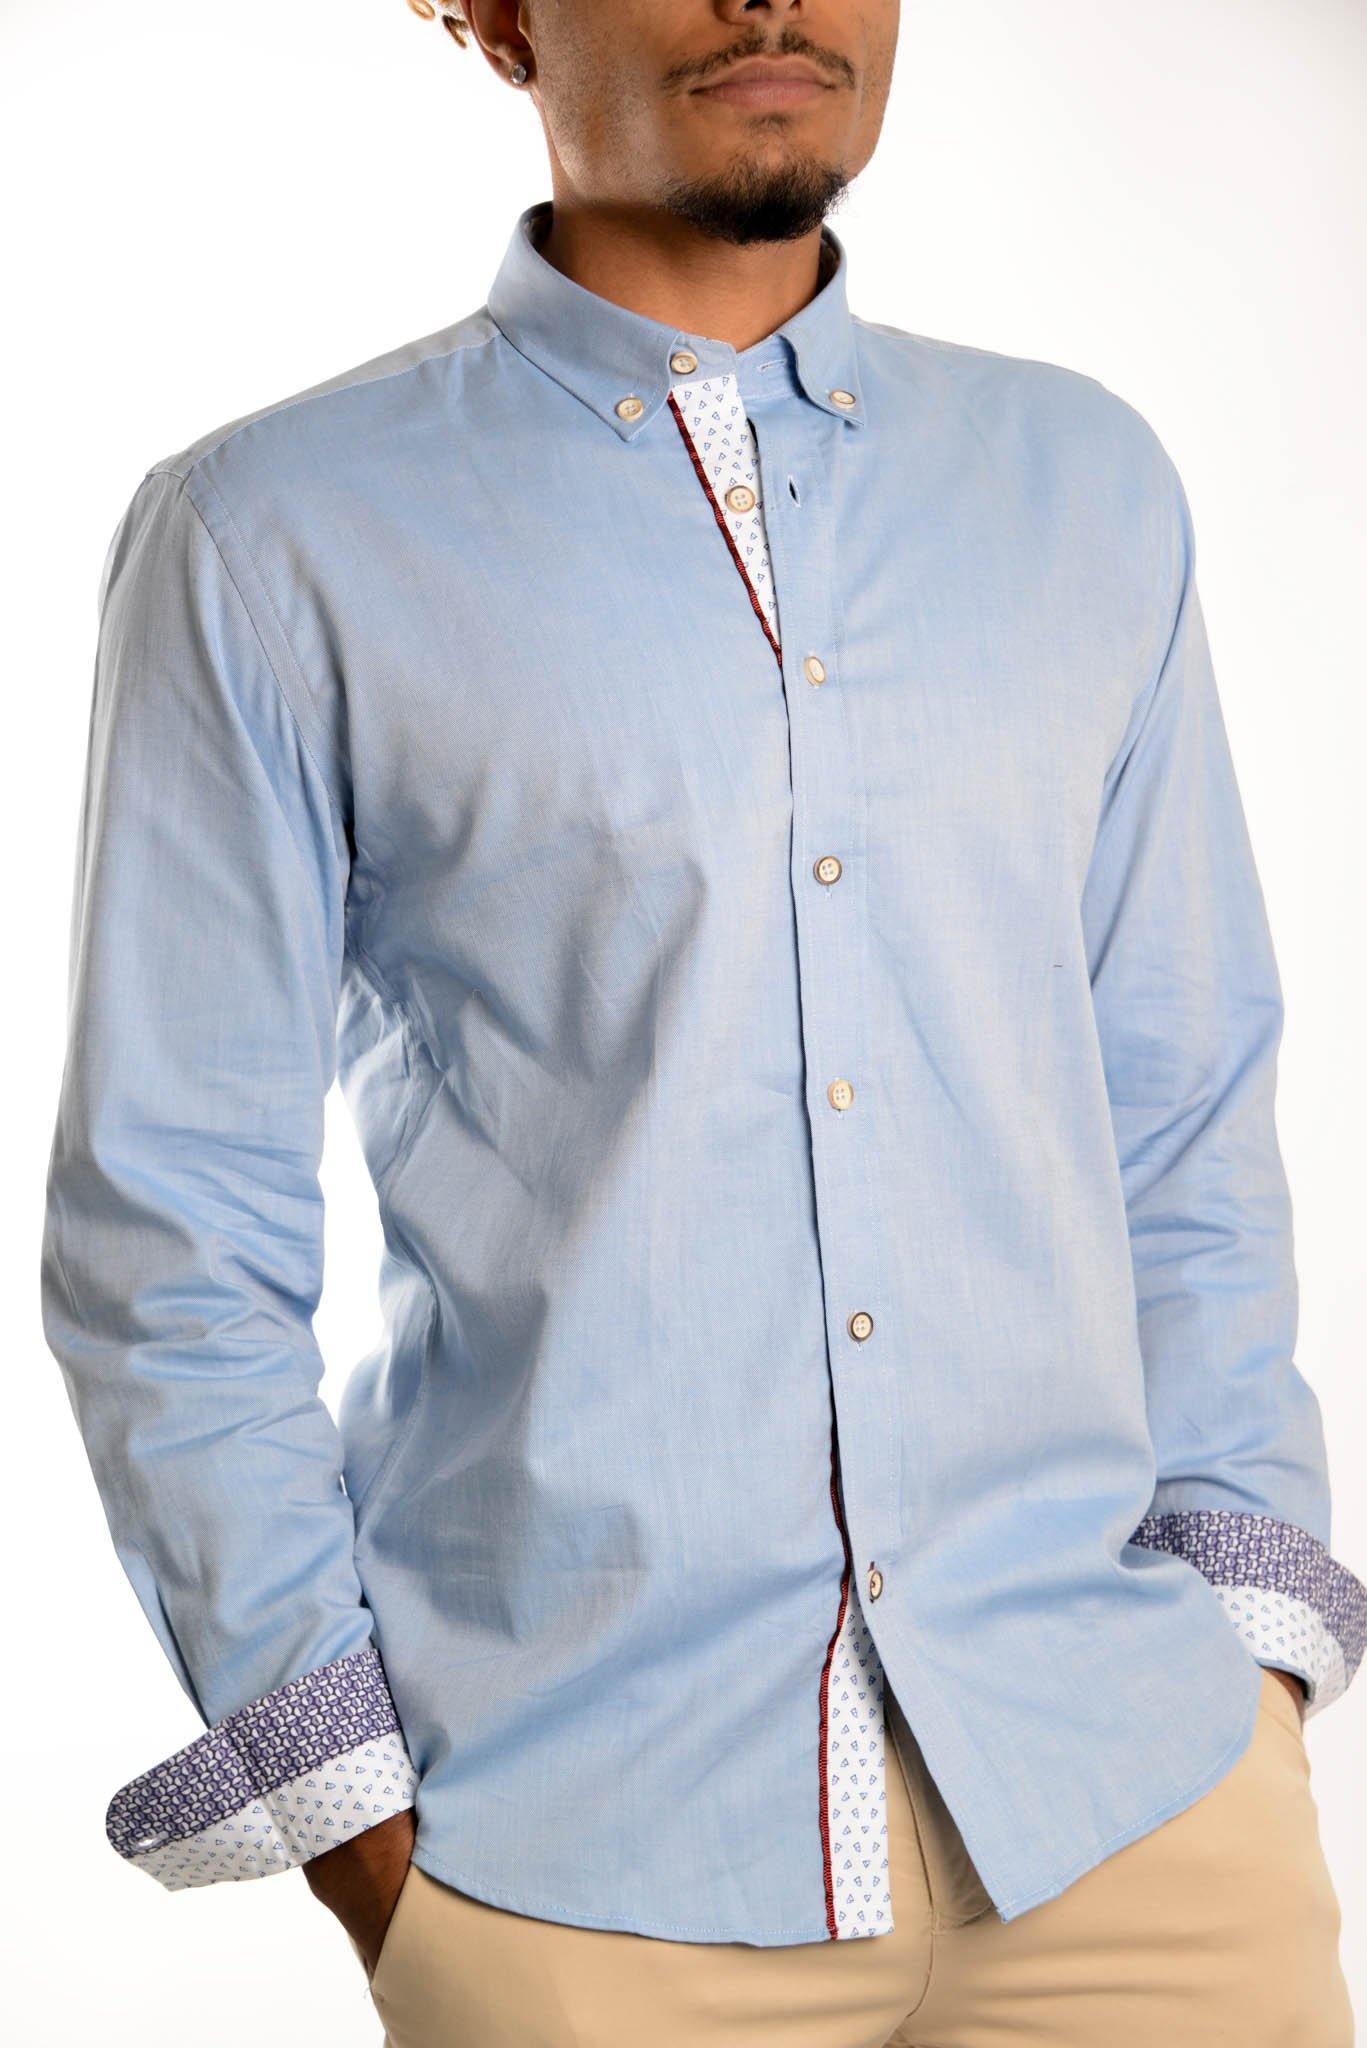 EURO LS SHIRT - Haight & Ashbury